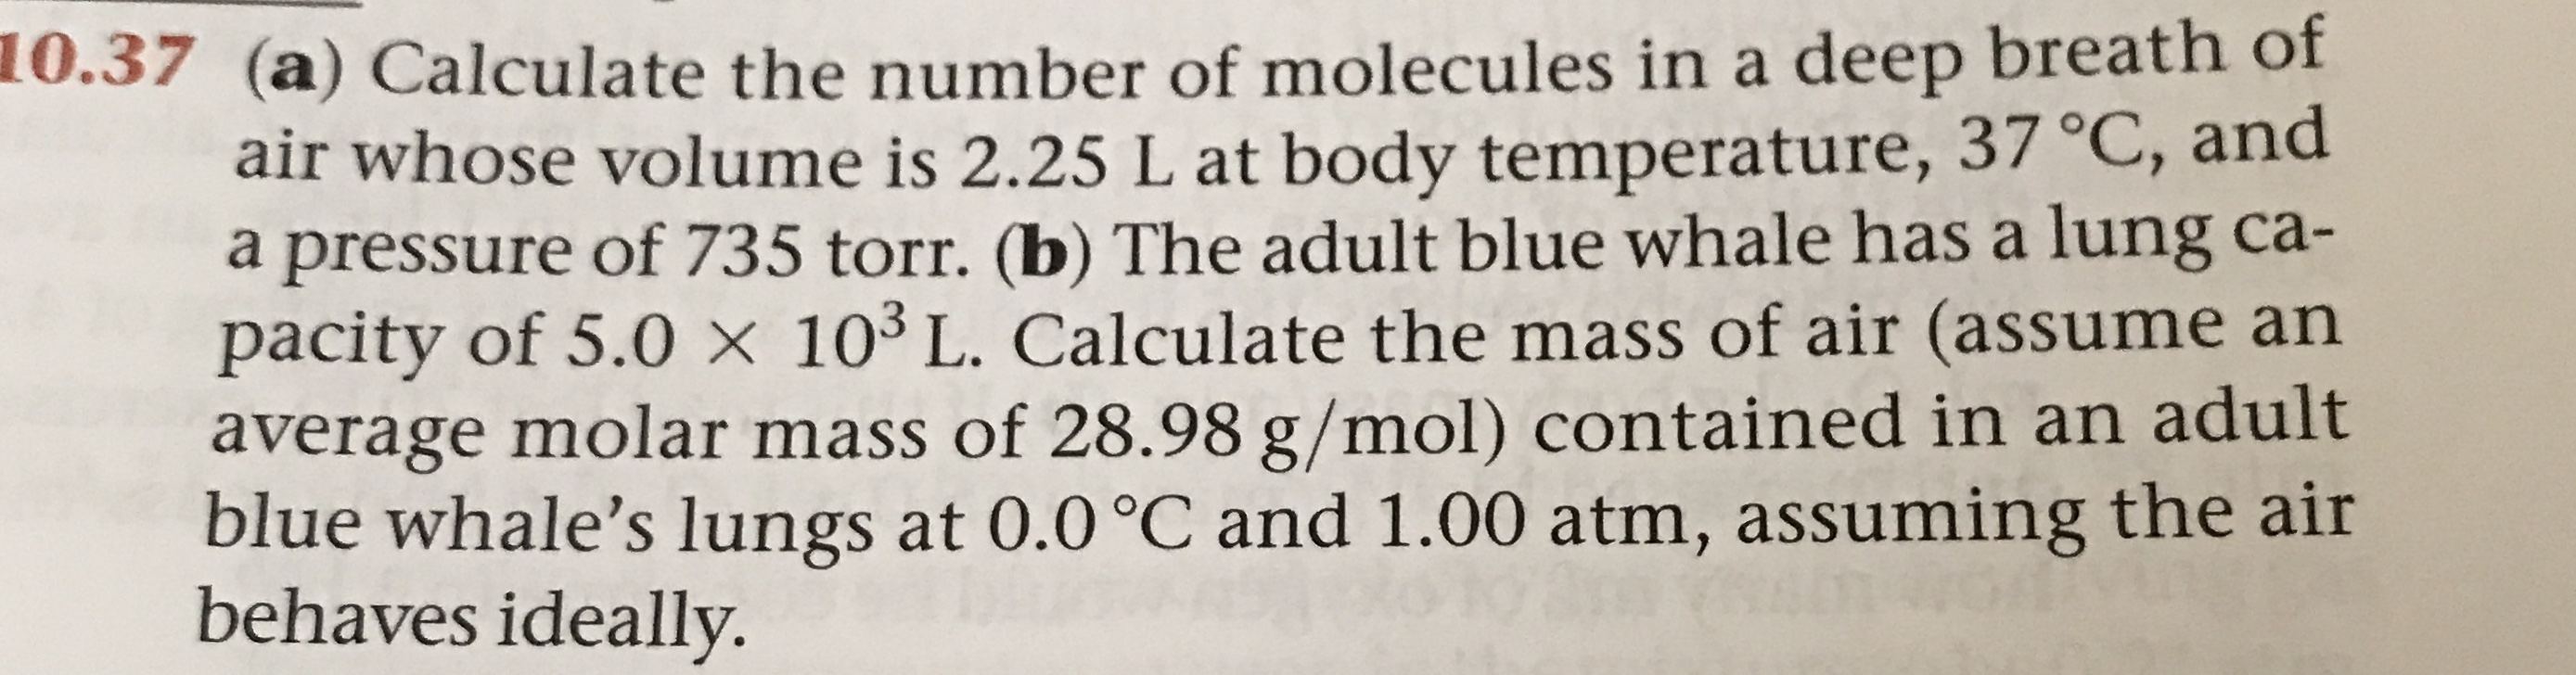 0.37 (a) Calculate the number of molecules in a deep breath of air whose volume is 2.25 L at body temperature, 37 °C, and a pressure of 735 torr. (b) The adult blue whale has a lung ca- pacity of 5.0 x 103 L. Calculate the mass of air (assume an average molar mass of 28.98 g/mol) contained in an adult blue whale's lungs at 0.0 °C and 1.00 atm, assuming the air behaves ideally.